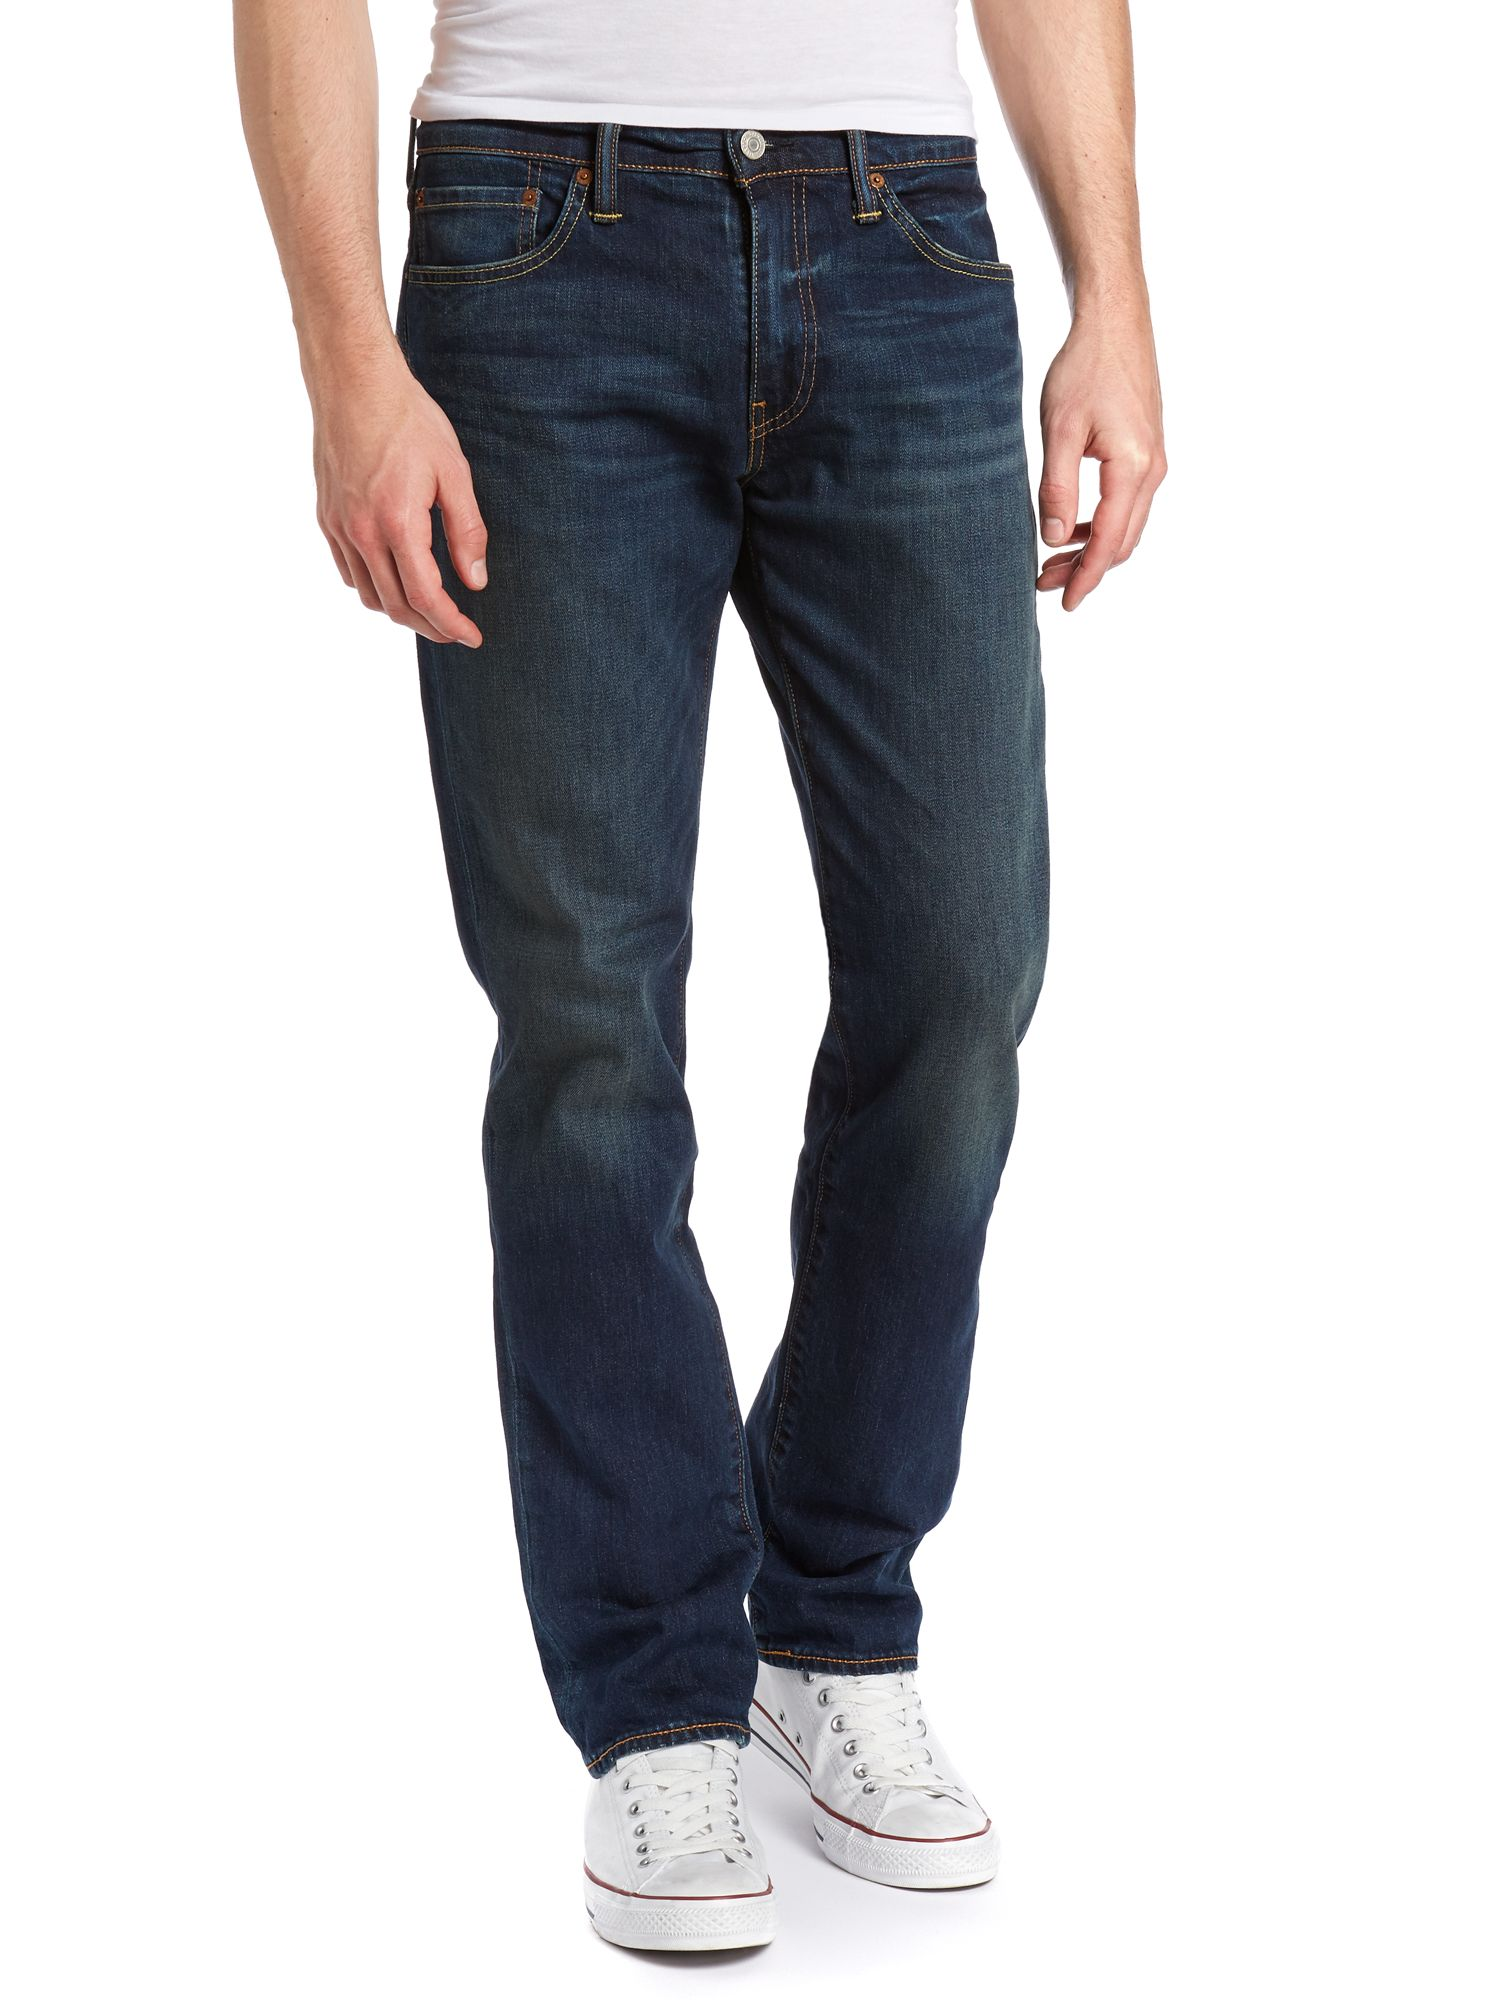 511 green edge dark wash slim leg jean